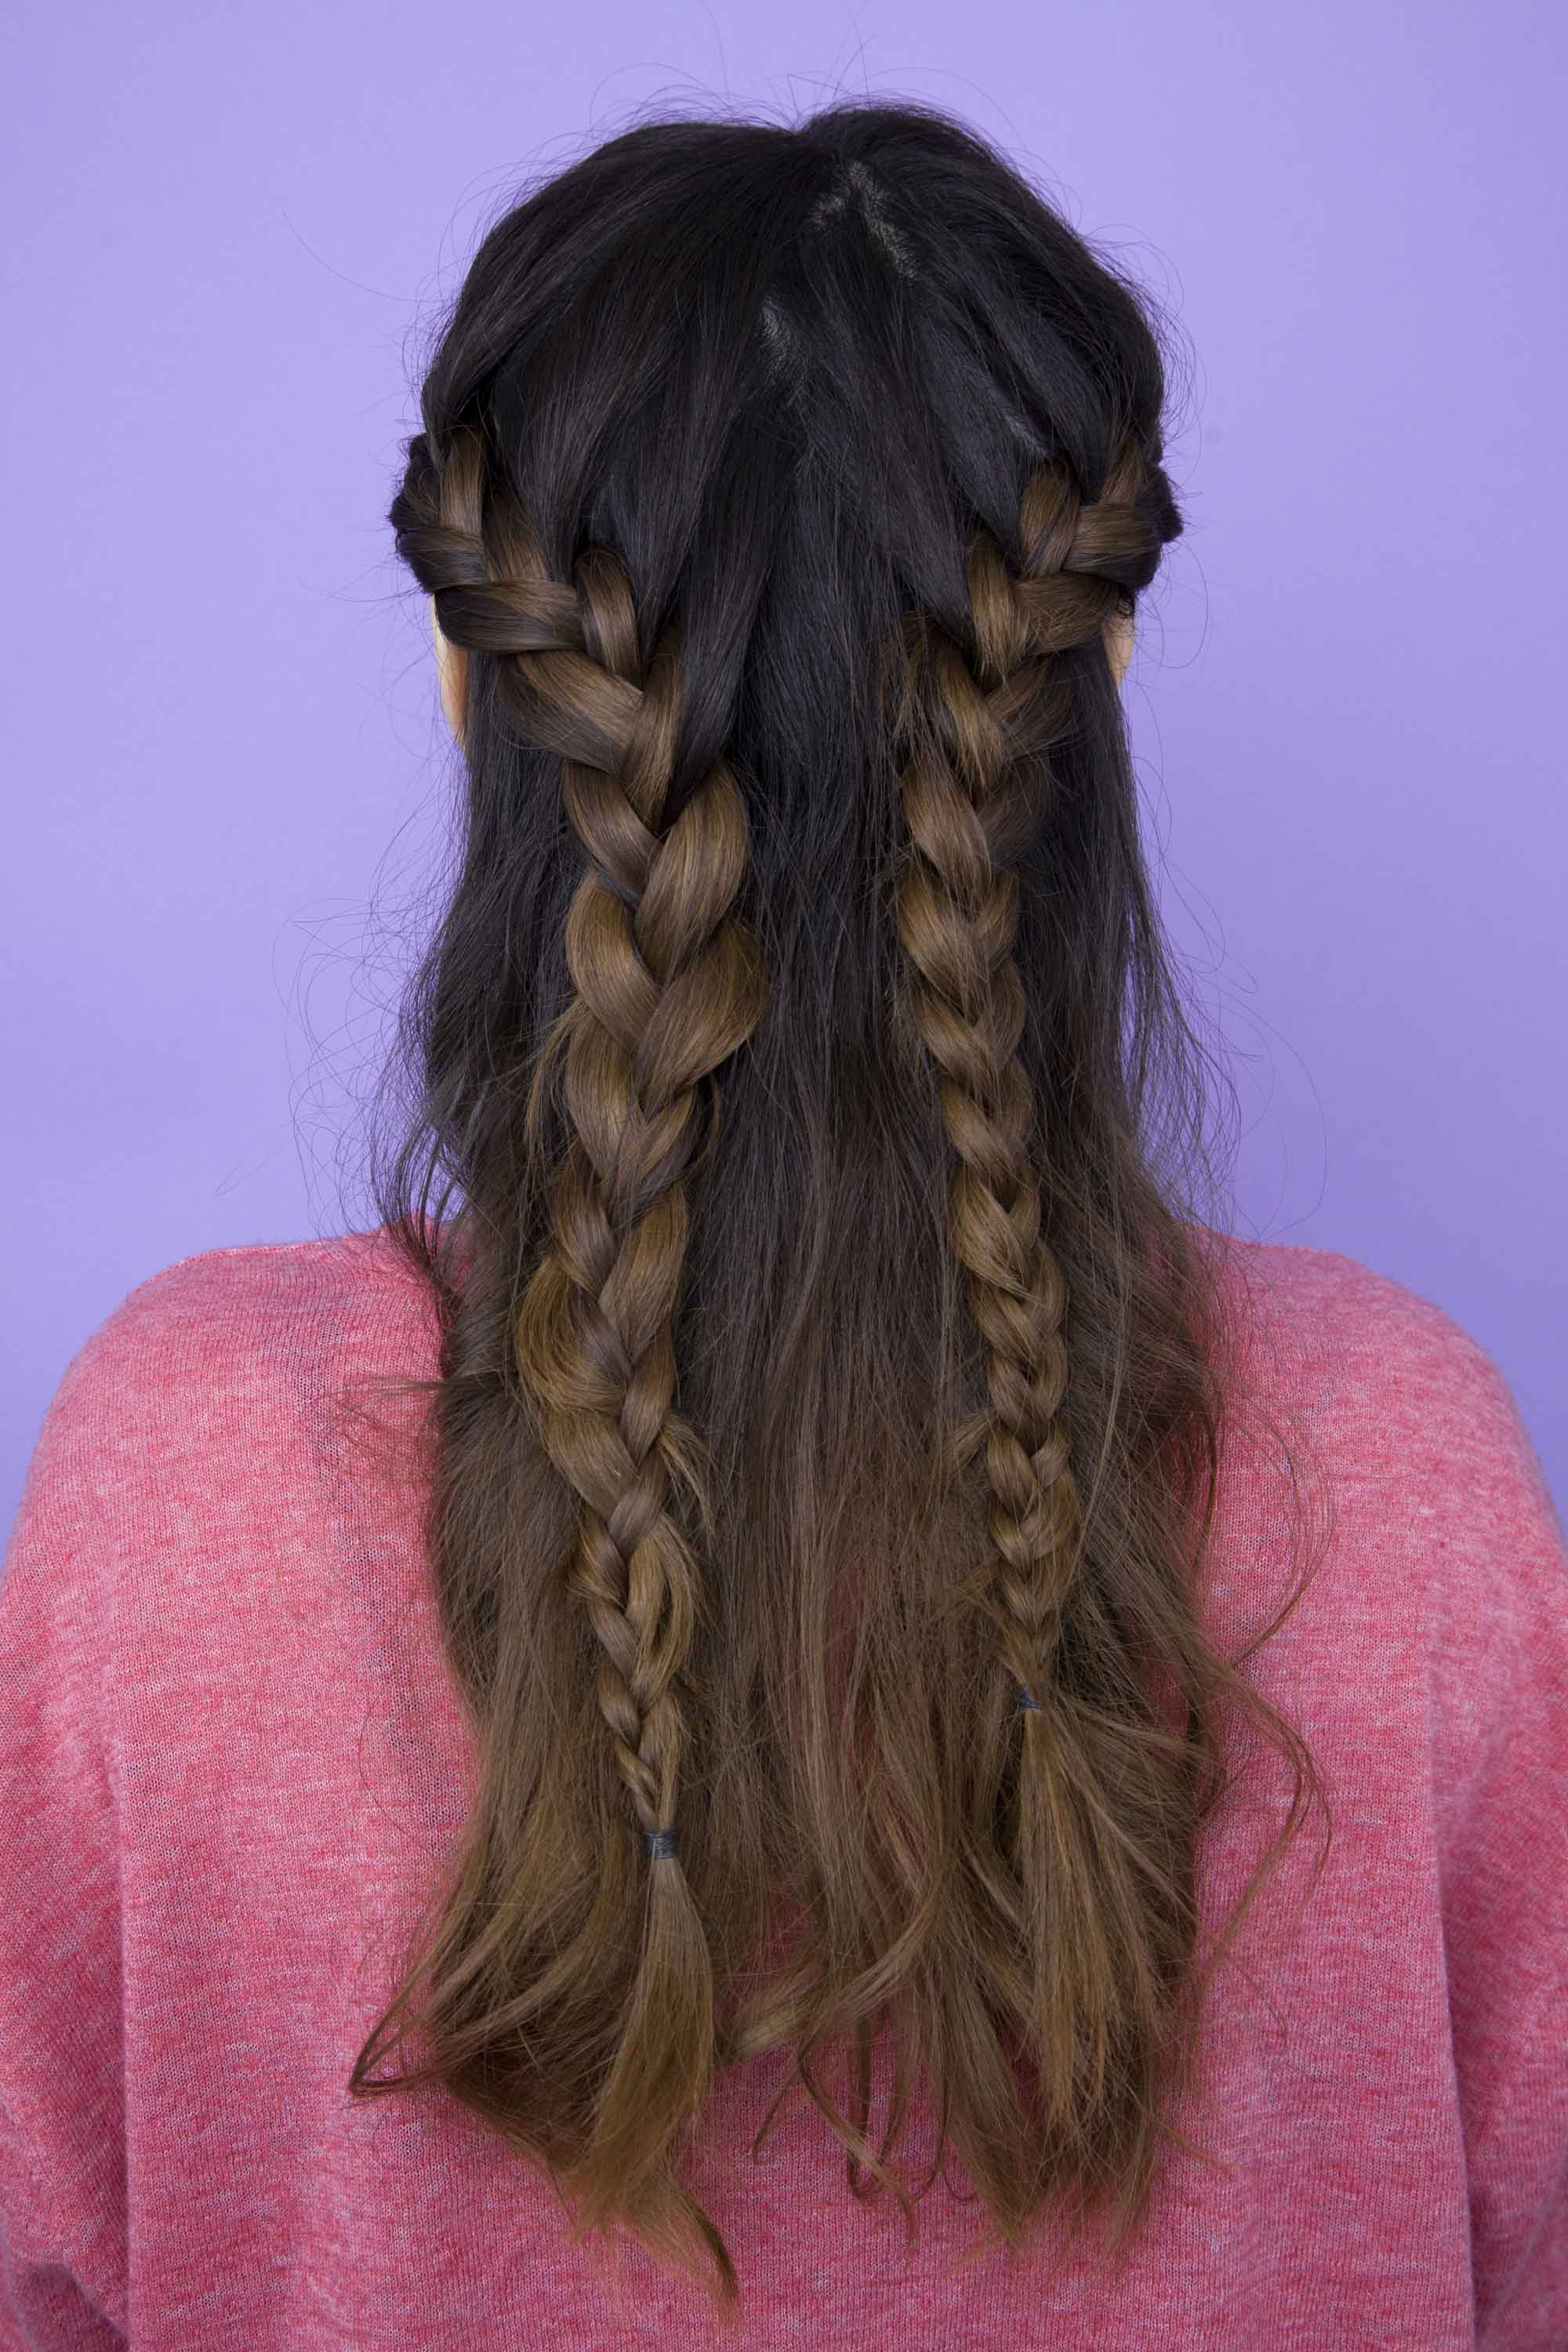 Festival hair: back view of woman with long brown hair styled with two french braids in half-up, half-down style. She is wearing a pink jumper and is in a studio setting with a purple background